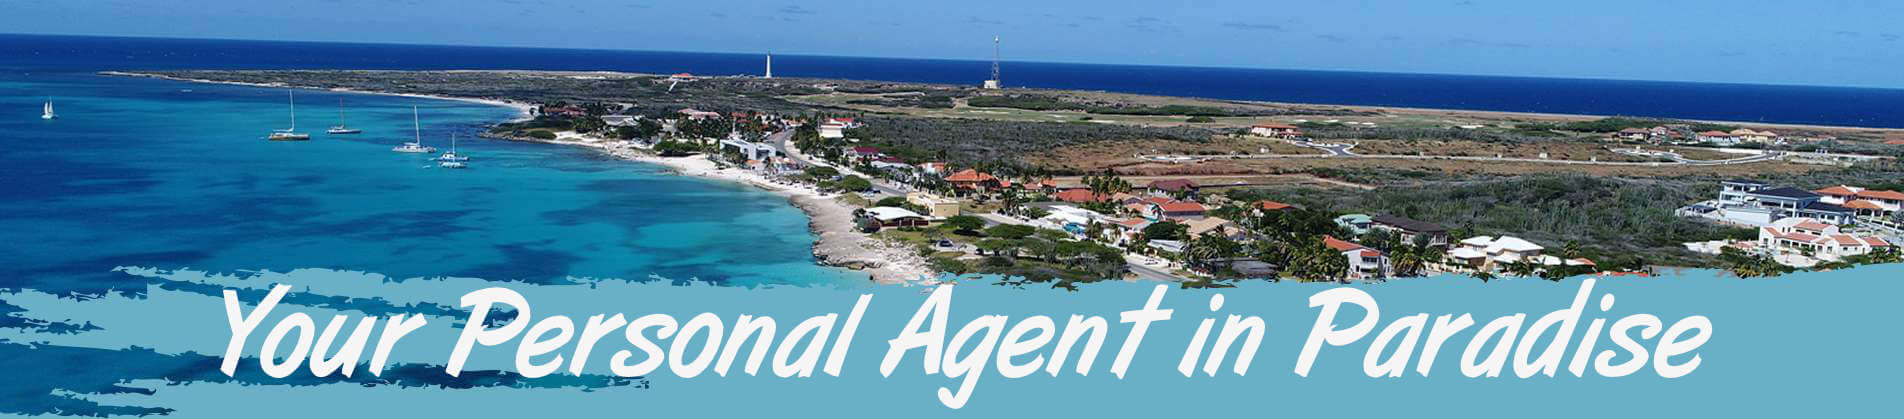 https://www.arubapalmsrealtors.com/wp-content/uploads/2018/08/Aruba-real-estate-hero.jpg